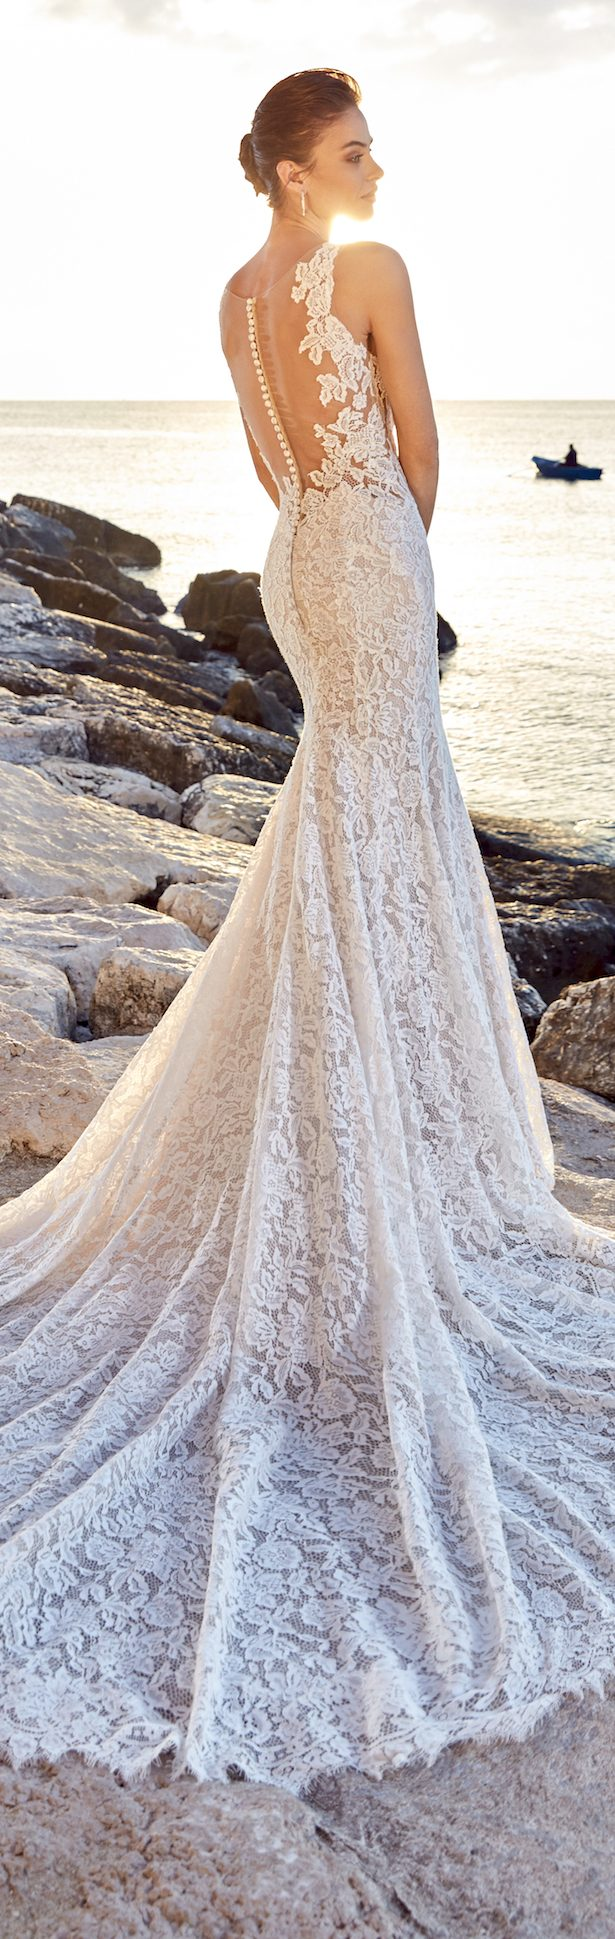 Eddy k dreams wedding dress collection 2018 belle the magazine eddy k wedding dress collection dreams 2018 junglespirit Image collections